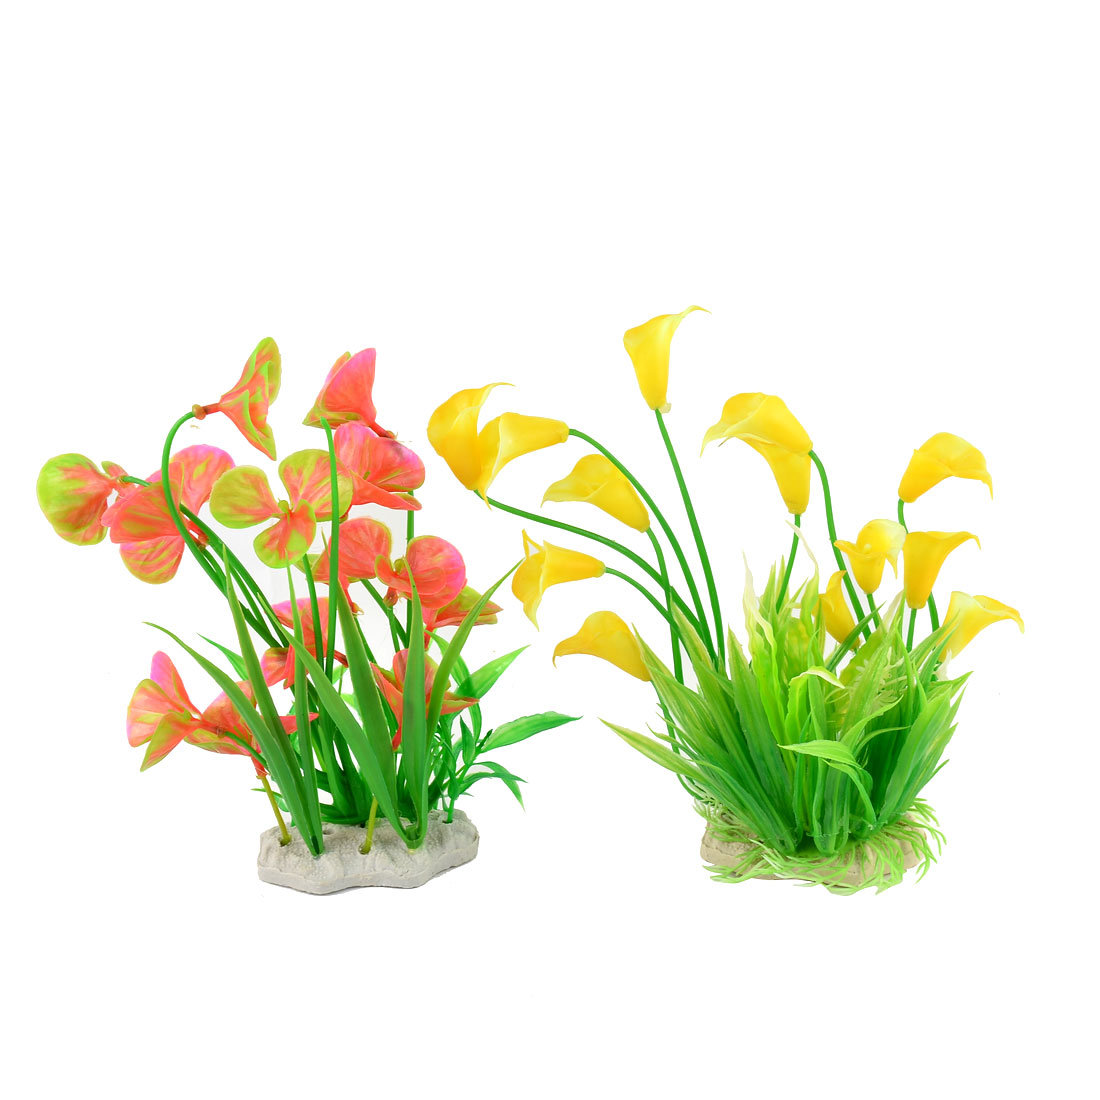 Emulation Aquatic Aquarium Plant Fish Tank Plastic Grass Flower Decor 2 in 1